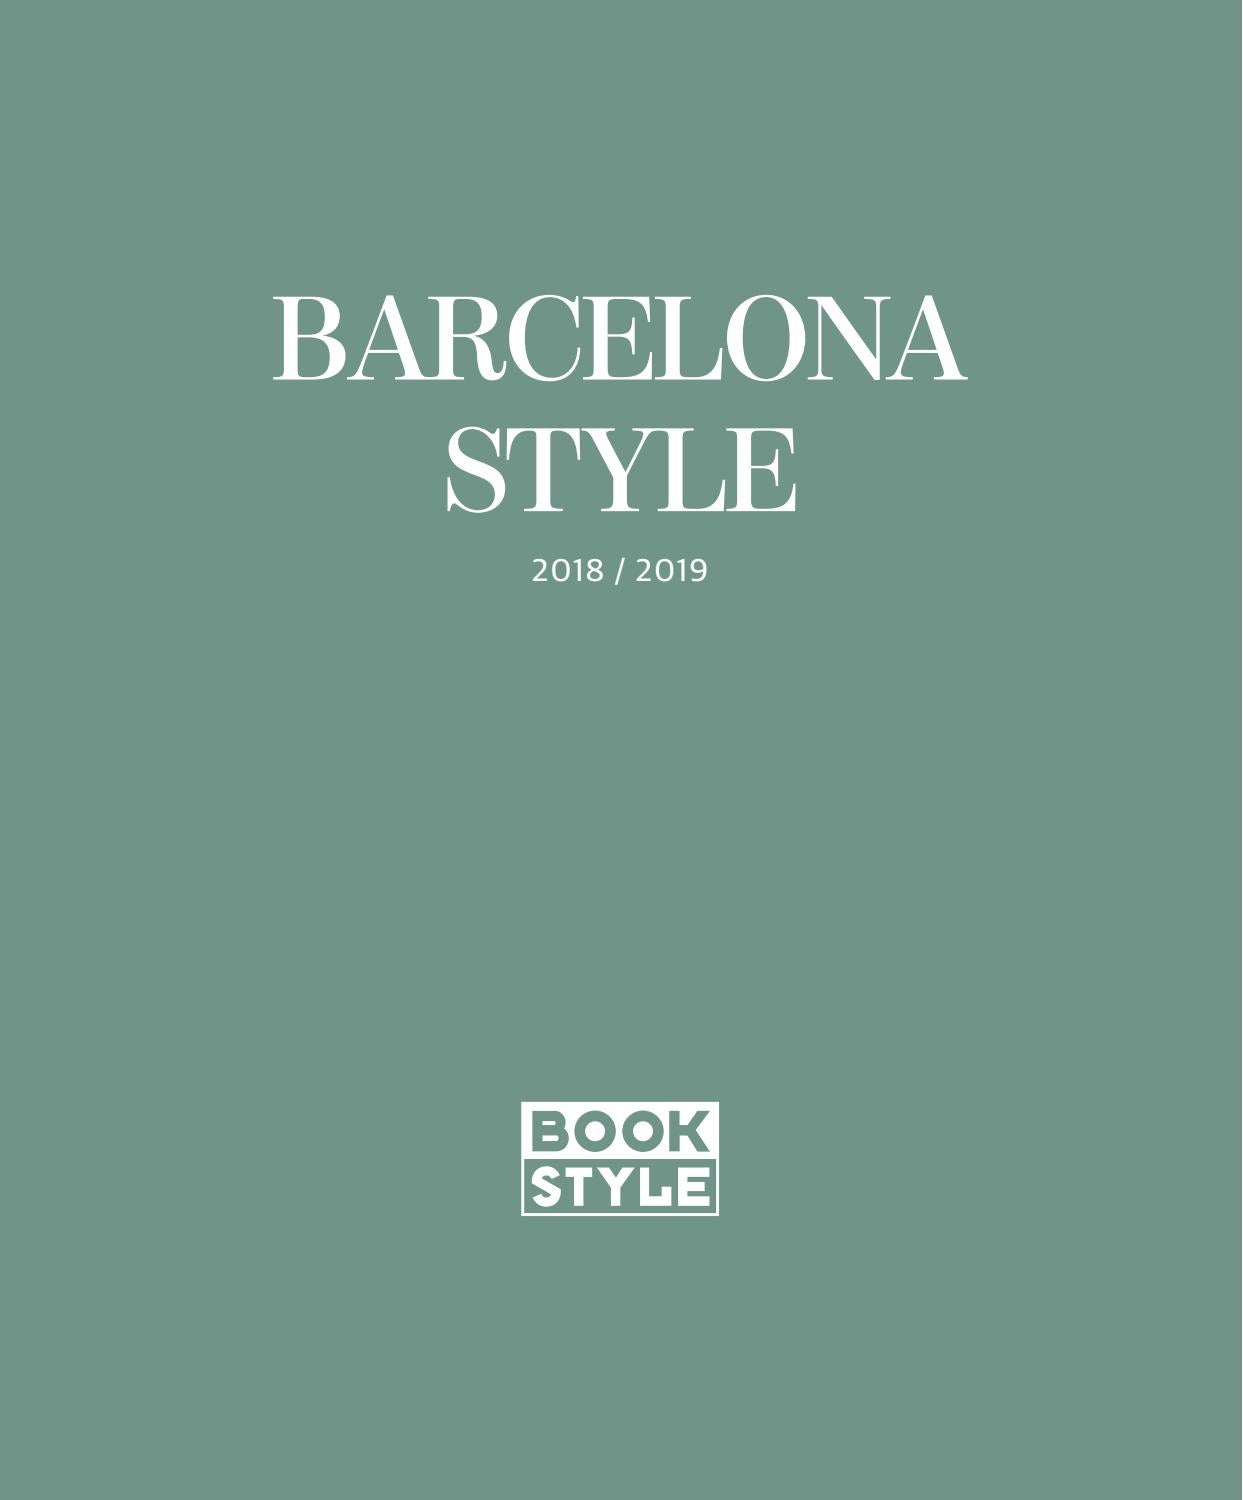 56d148728 Barcelona Style 2018 2019 by joan alay campillo - issuu